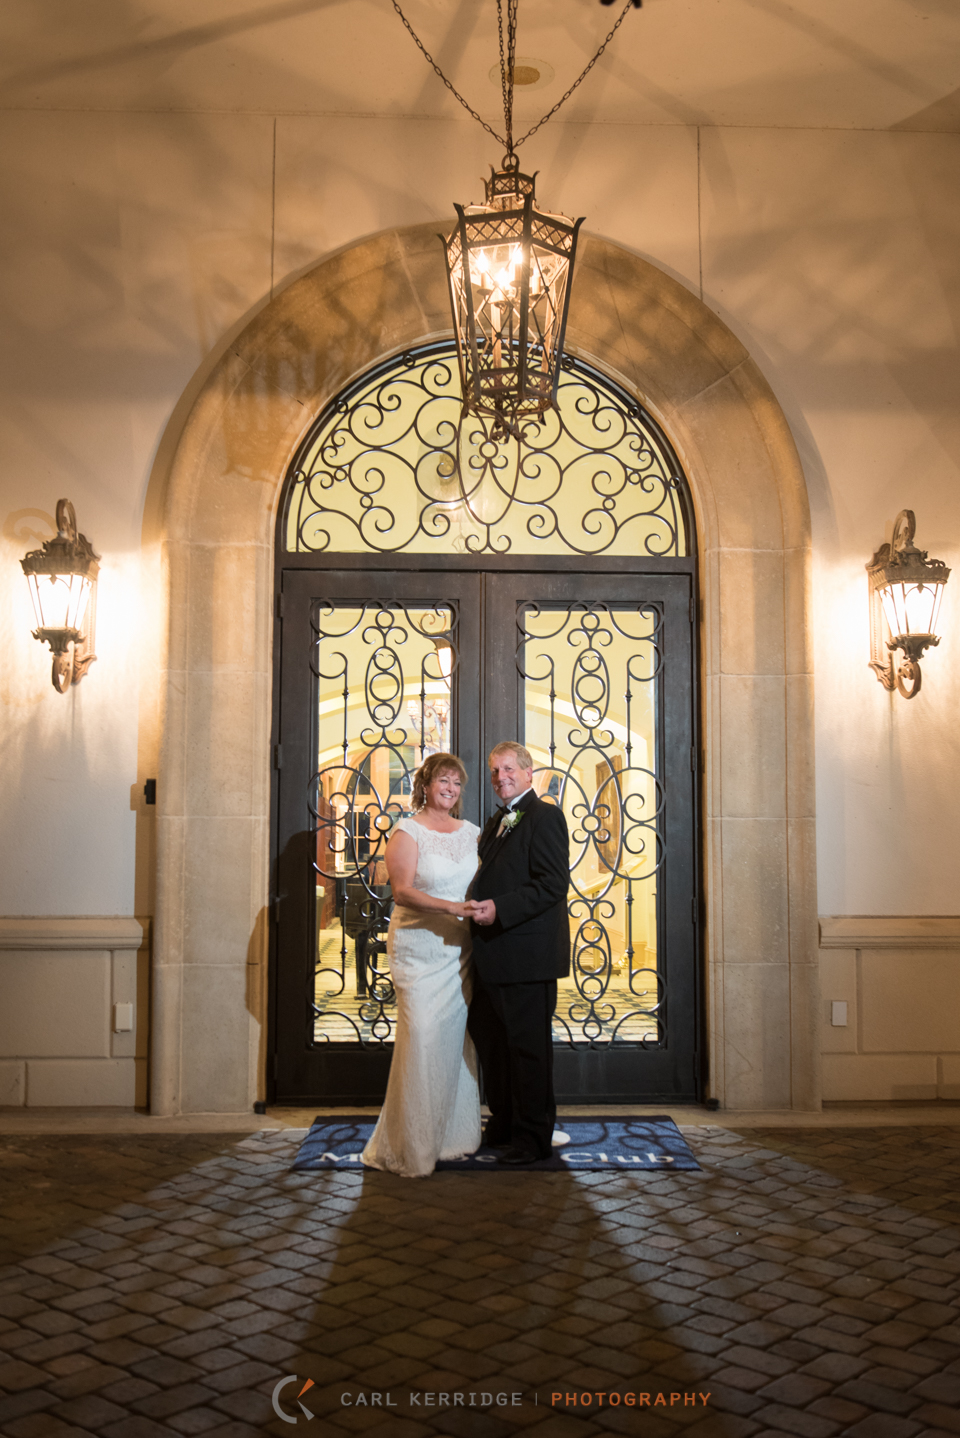 With an atmosphere of love and fun, the couple pose for a portrait in front of the big glass doors at the members club at grande dunes.